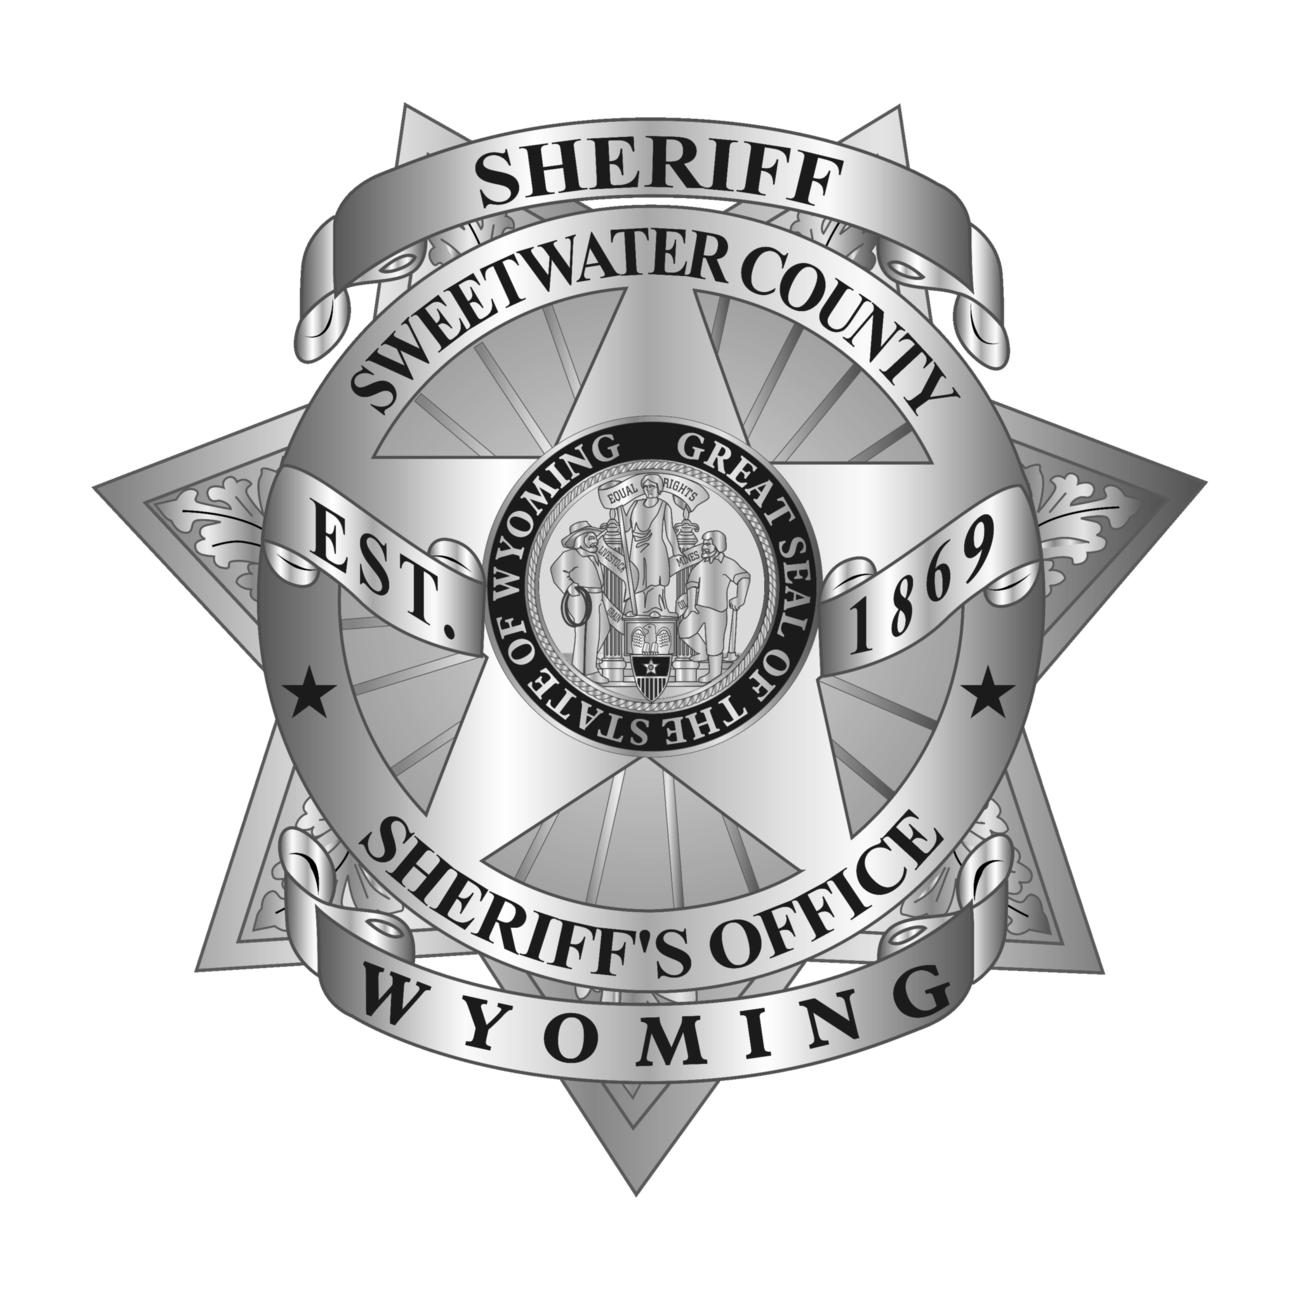 2019-Badge---Sheriff-with-Wyoming-Banner---Original-bw